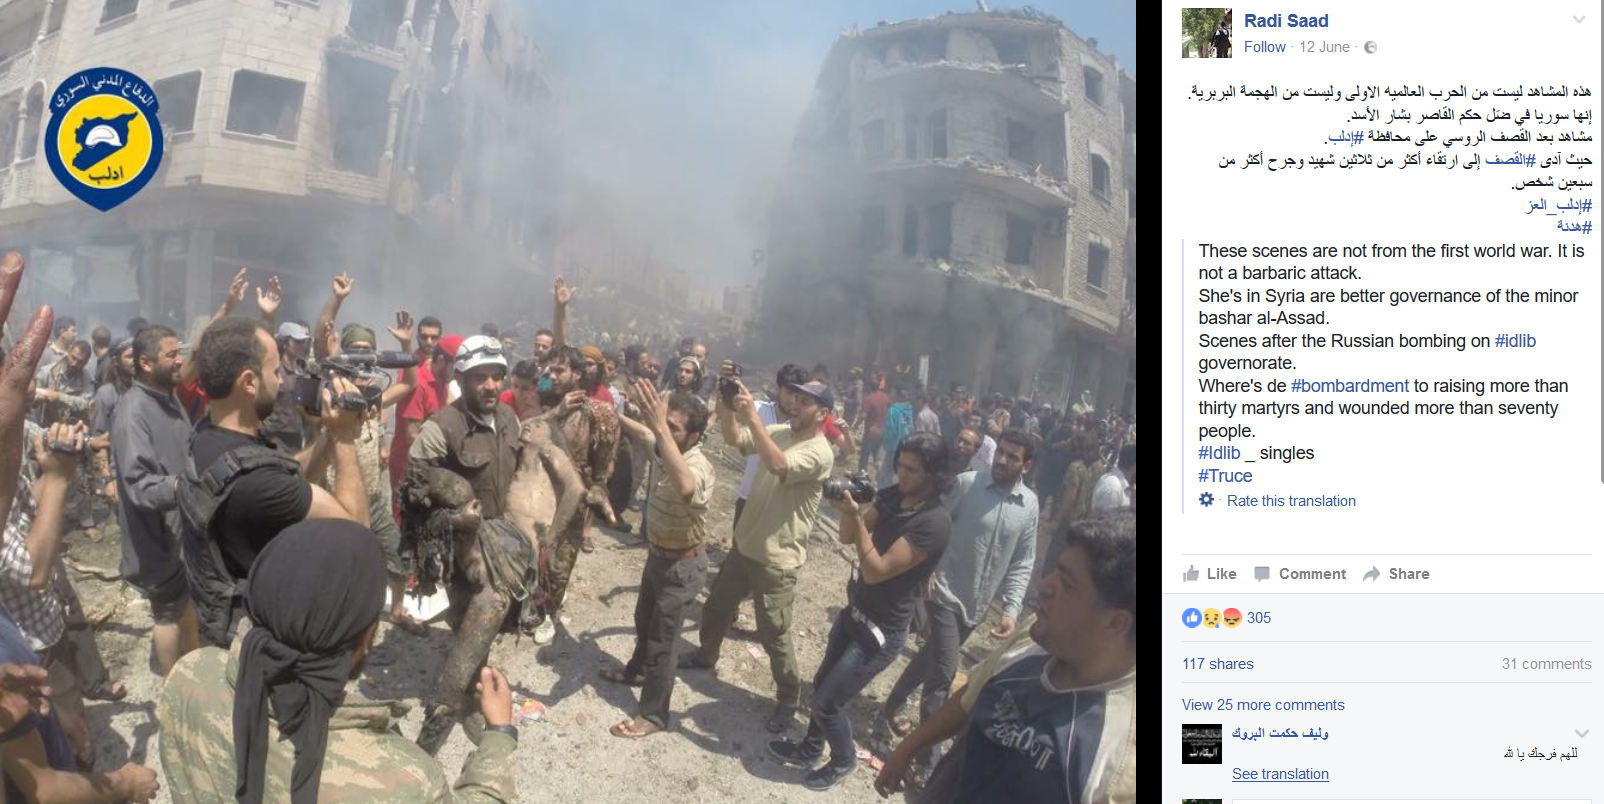 In June 2016, Muawiya Hassan Agha was spotted photographing a White Helmet rescue, despite claims that the White Helmets had sacked him and condemned his involvement in an extrajudicial execution. Agha is on right, holding a camera and dressed in black. (Screenshot of Facebook page)